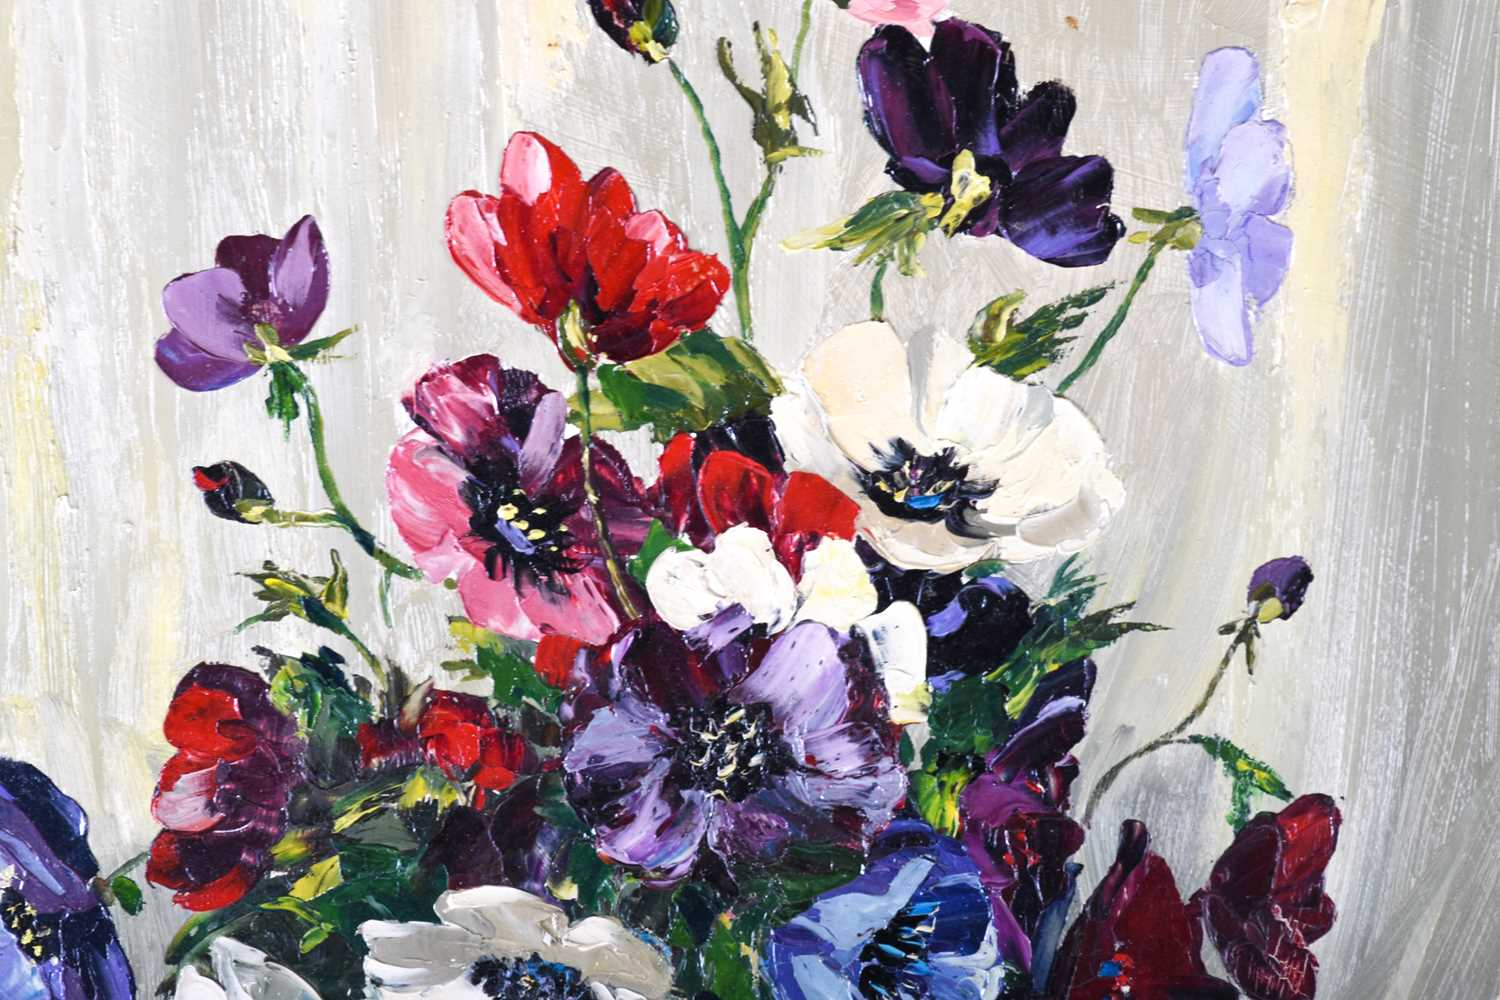 Lot 13 - Franco Matania (1922-2006) Italian/British,a large still life floral arrangement, oil on canvas,